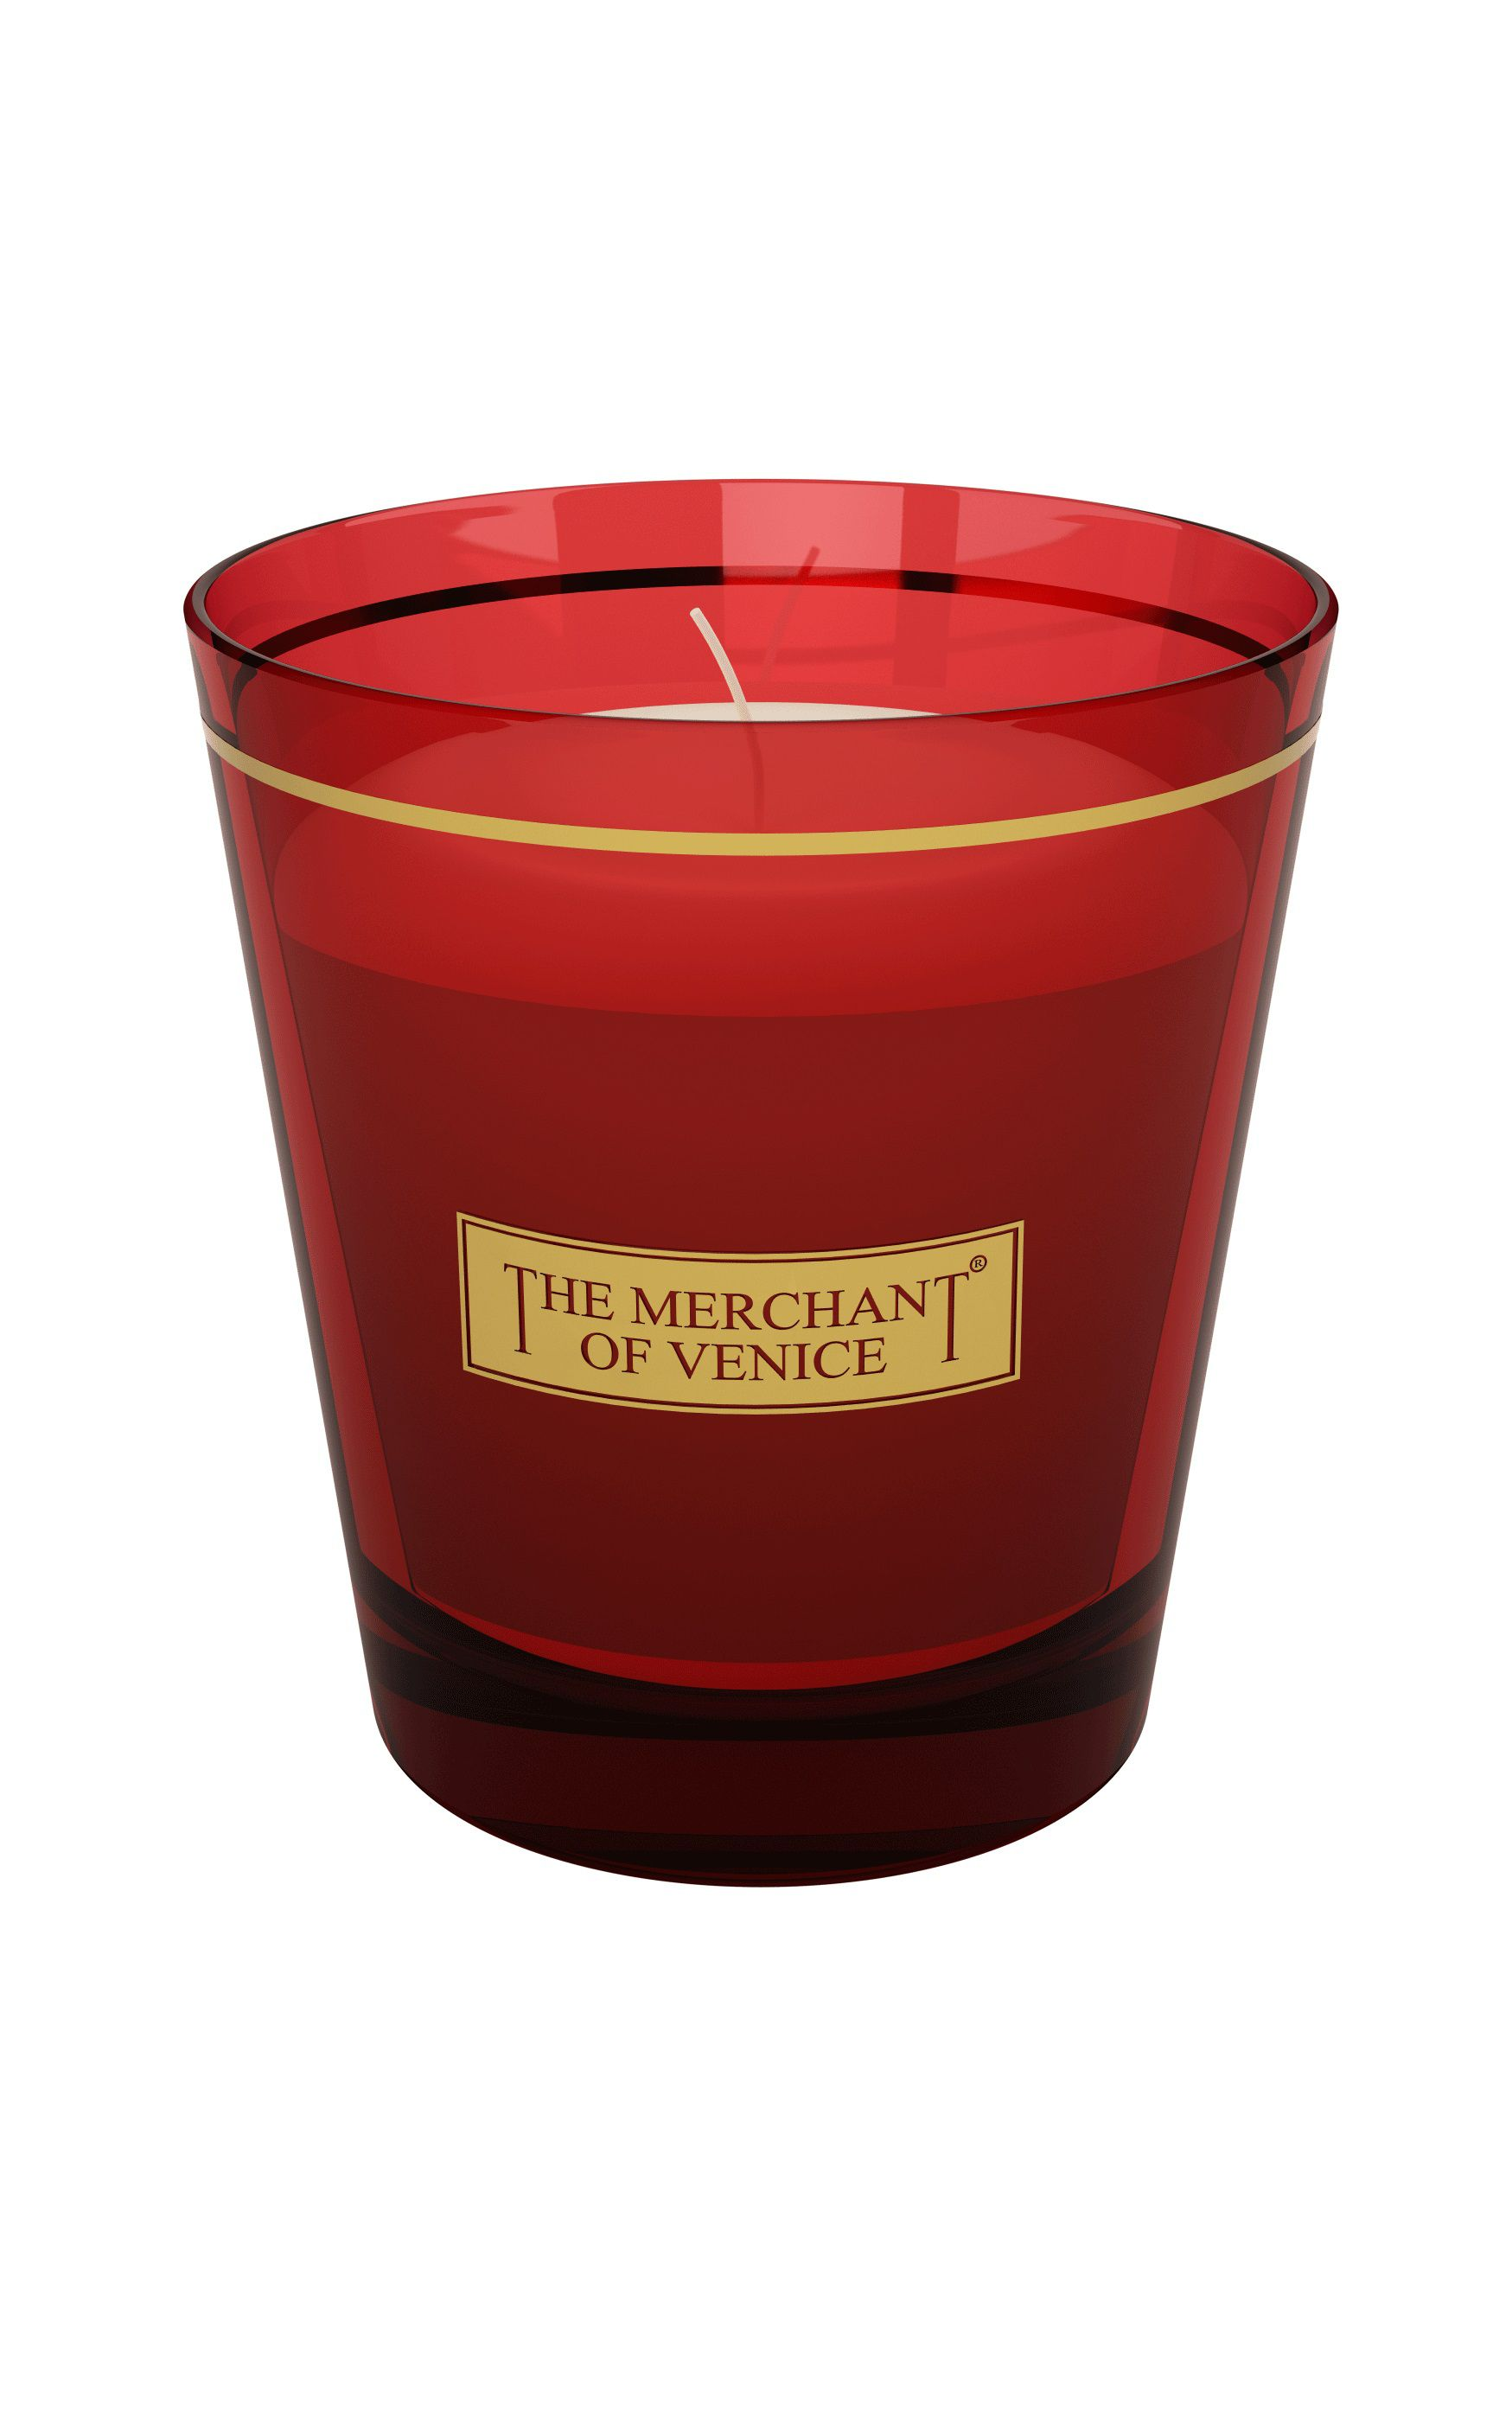 Image of The Merchant Of Venice Amber Intense Perfumed Candle 230g